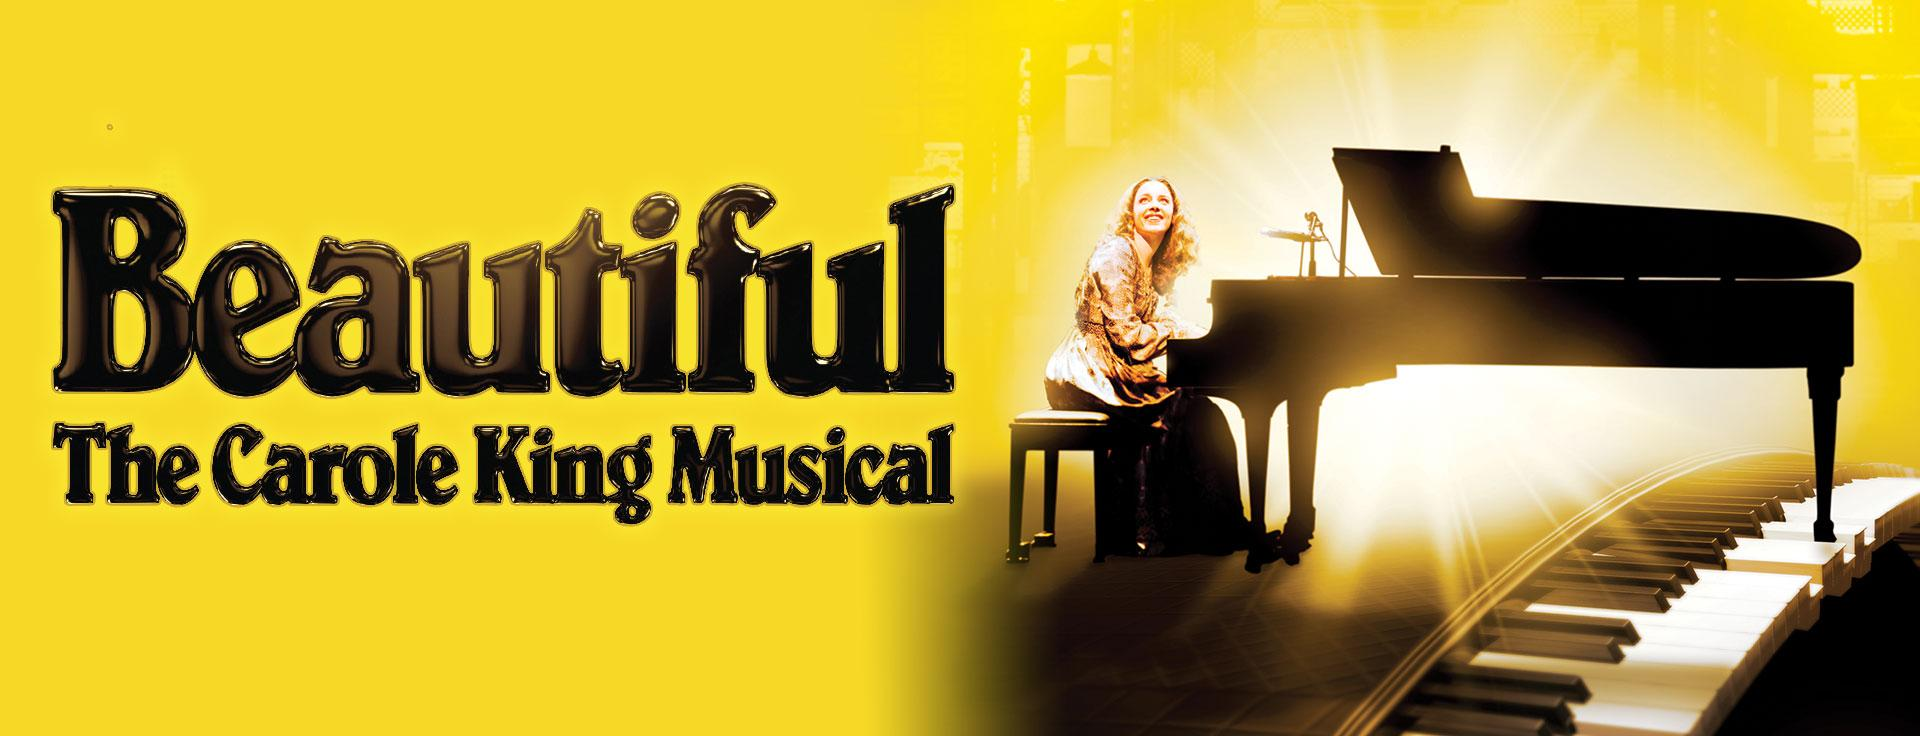 Carousel image for Beautiful: The Carole King Musical.  A woman sits at a grand piano, smiling and looking upwards.  A bright light shines both on her face and from behind the piano.